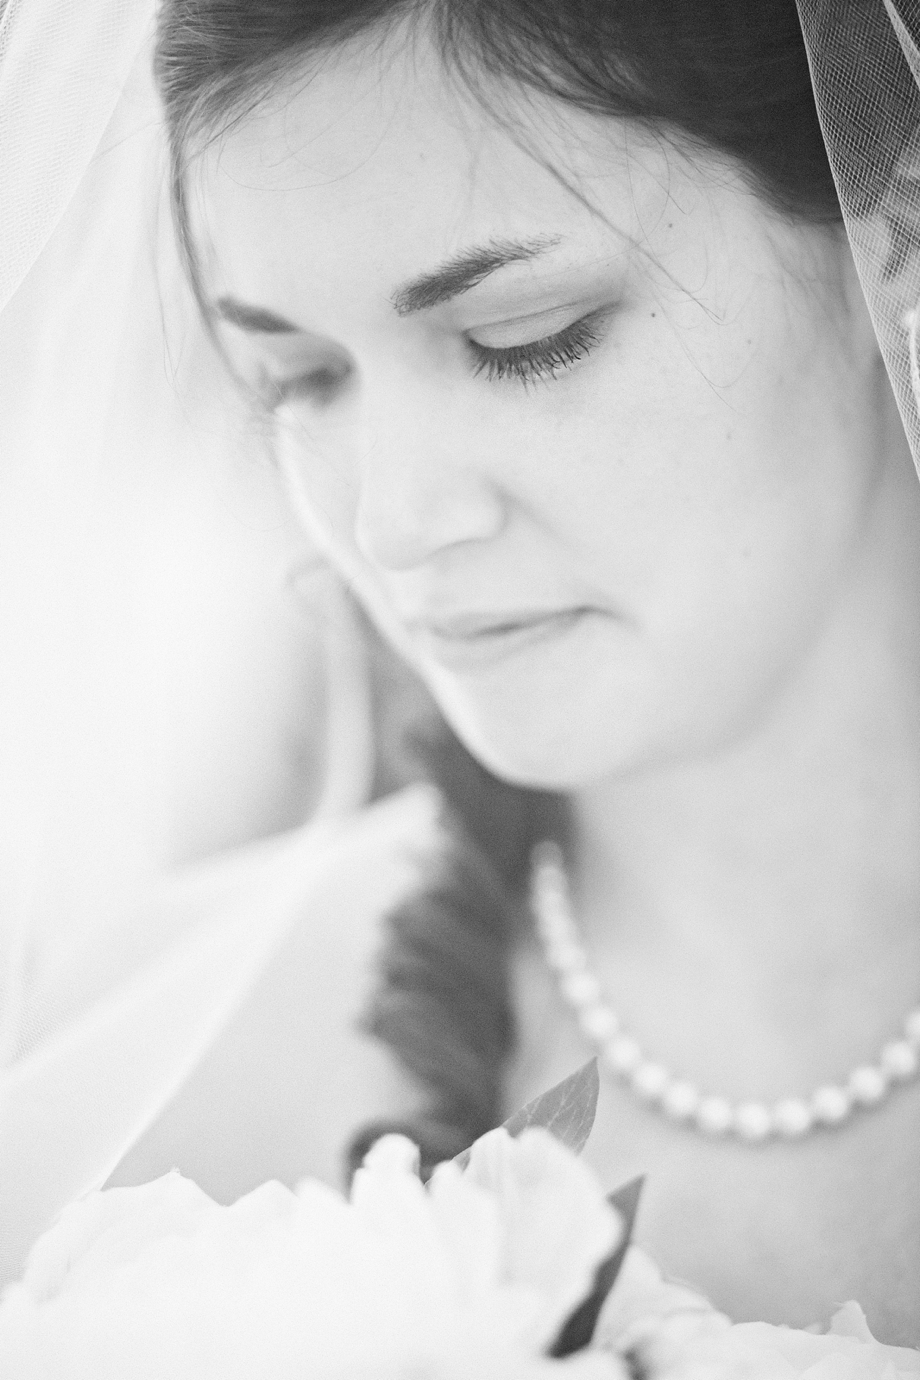 omaha nebraska wedding photographer - Daniel Dunlap